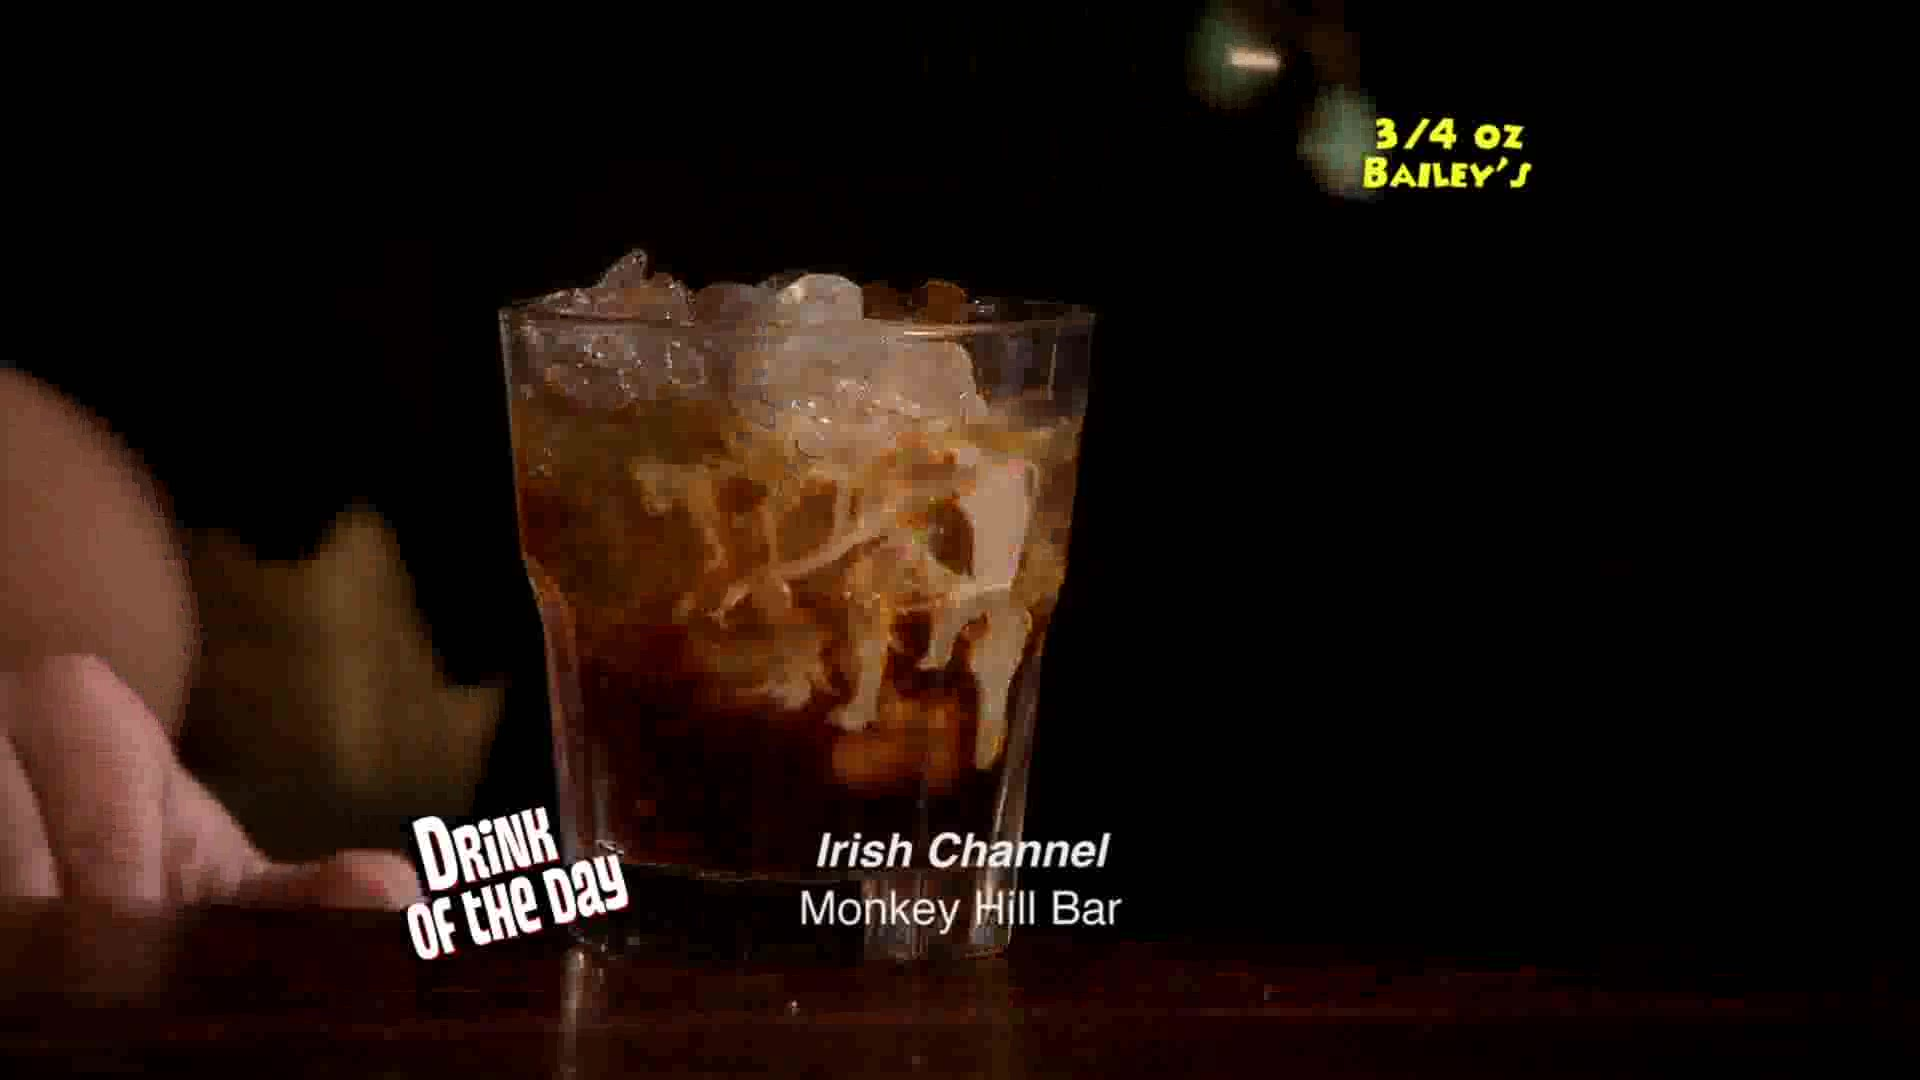 Drink of The Day: Irish Channel